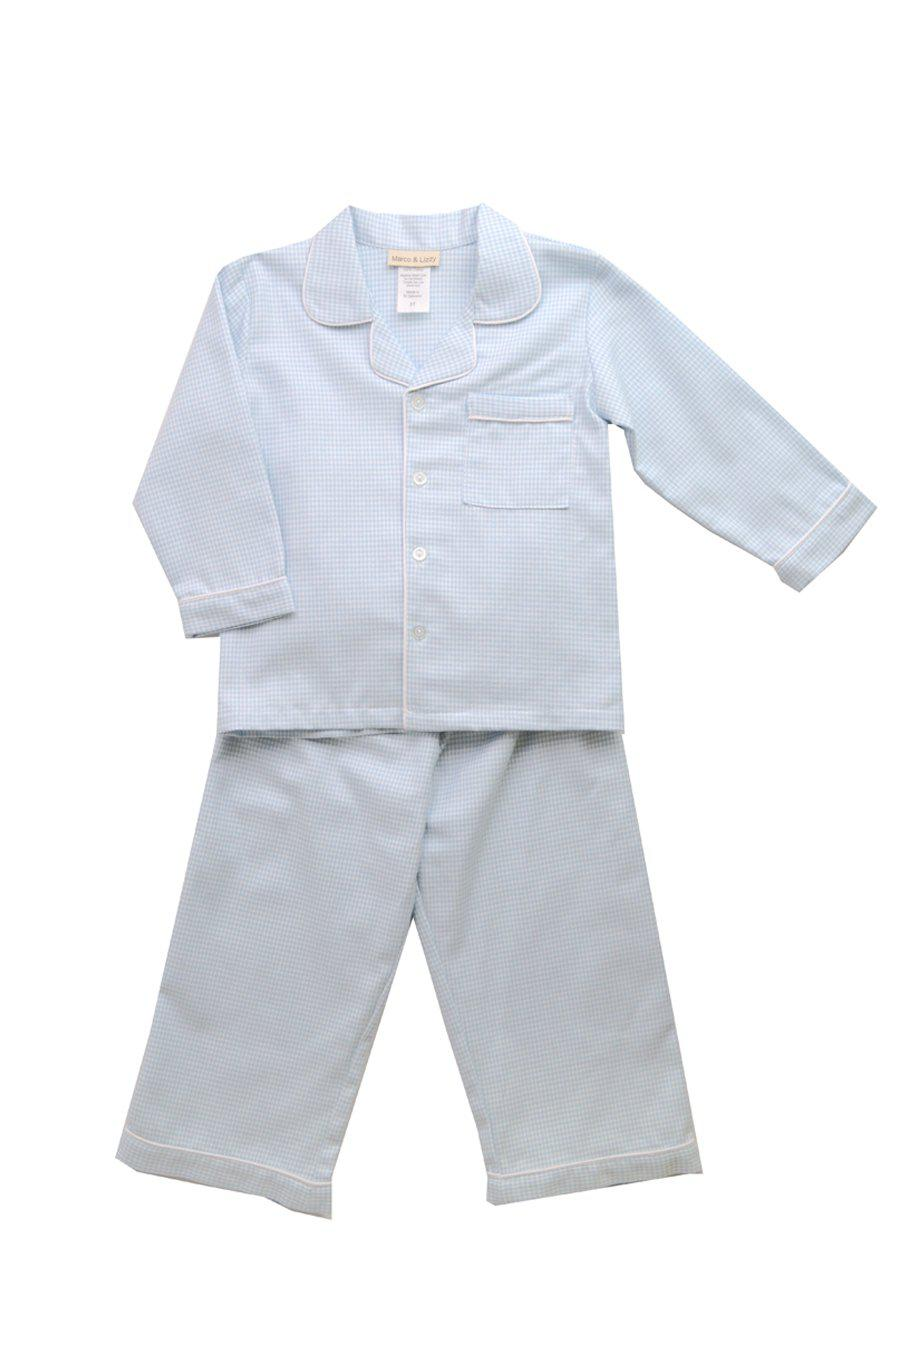 Blue Classic Houndstooth Two Piece Boy's Jammies - Little Threads Inc. Children's Clothing